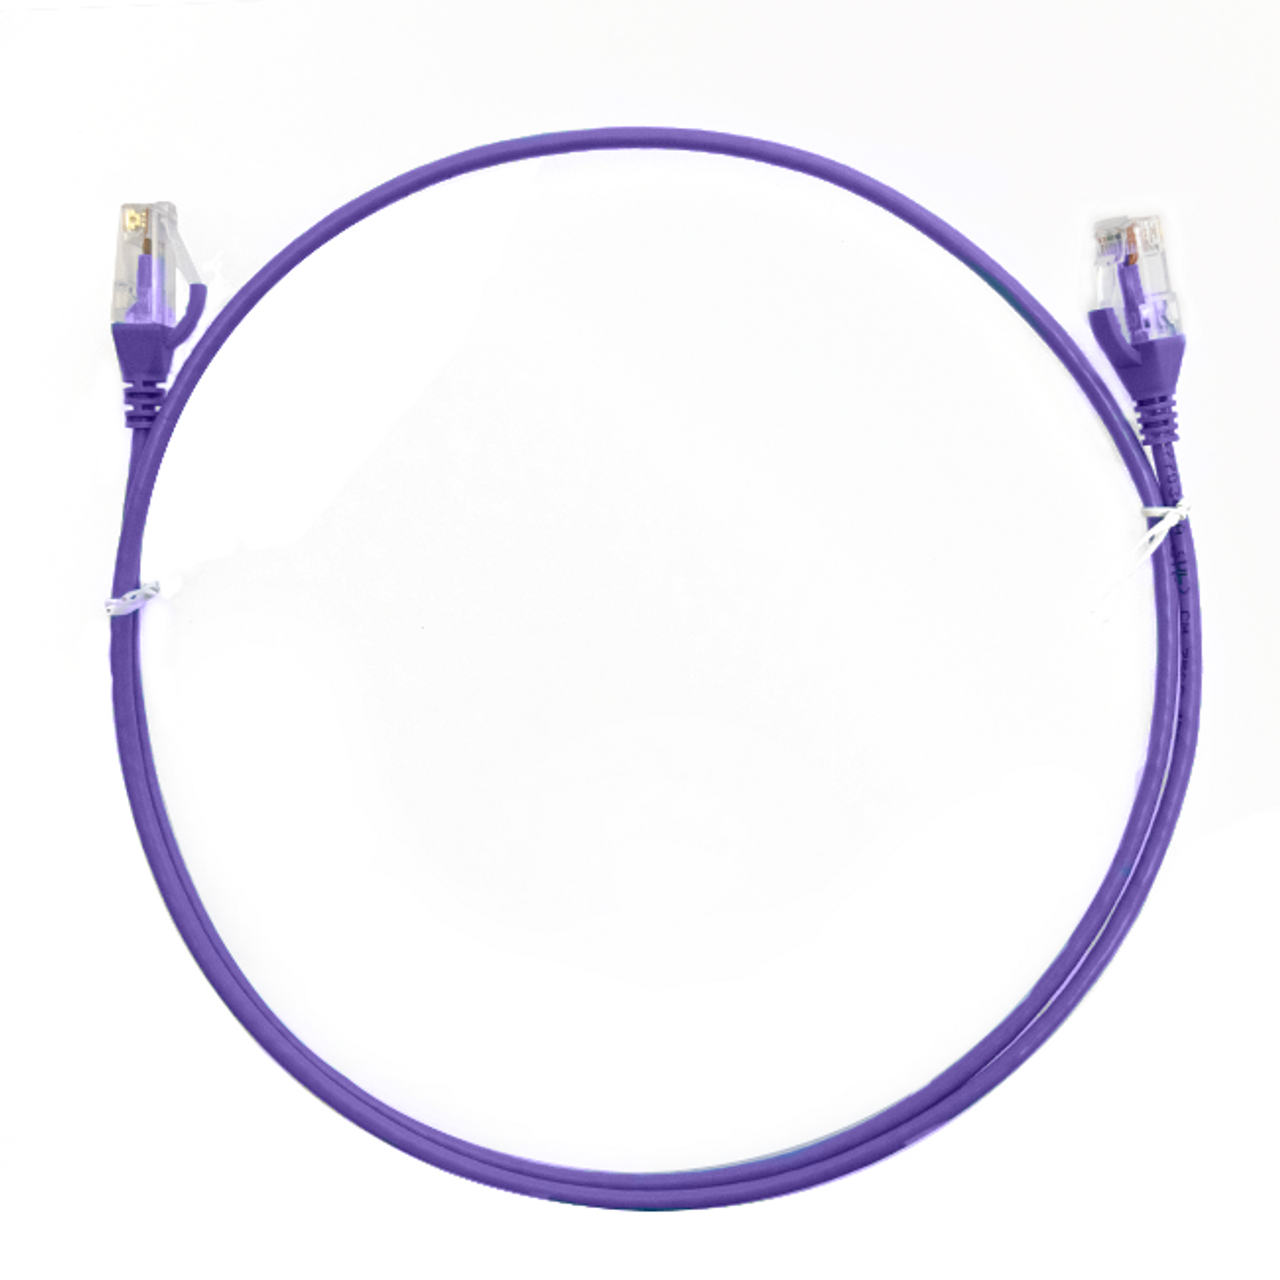 Image for 1m Cat 6 Ultra Thin LSZH Ethernet Network Cables: Purple CX Computer Superstore